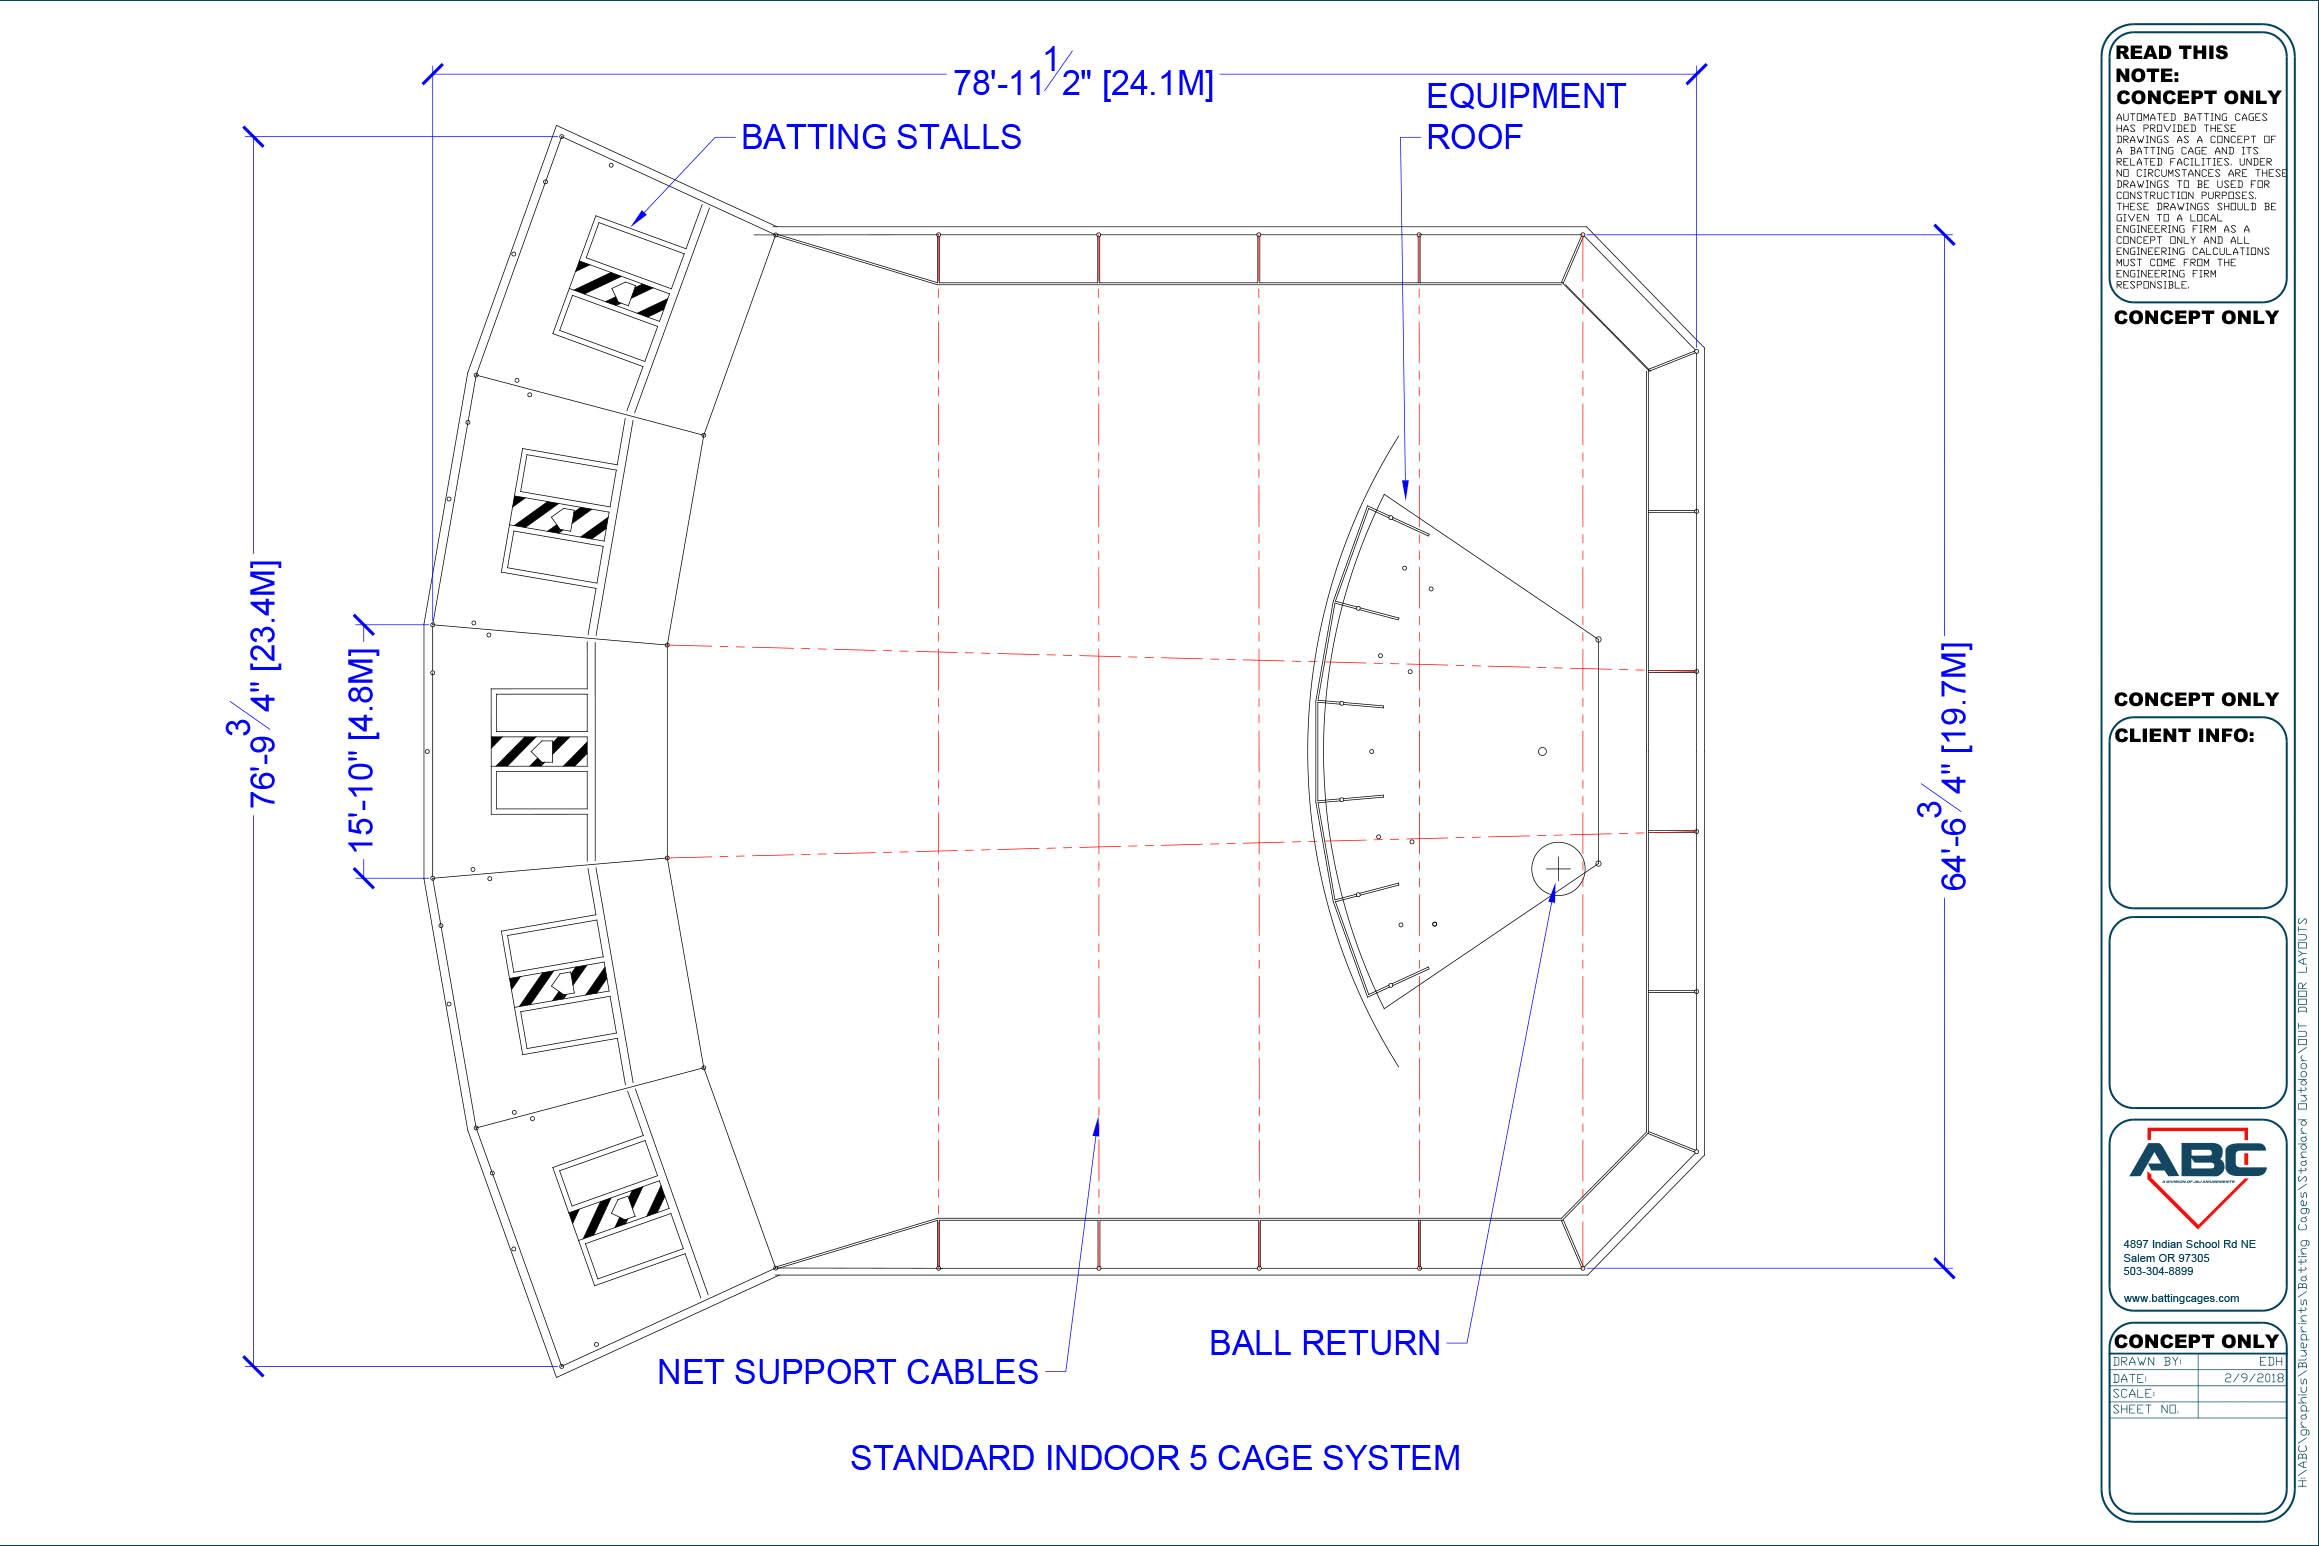 ABC standard indoor 5 cage system blueprint